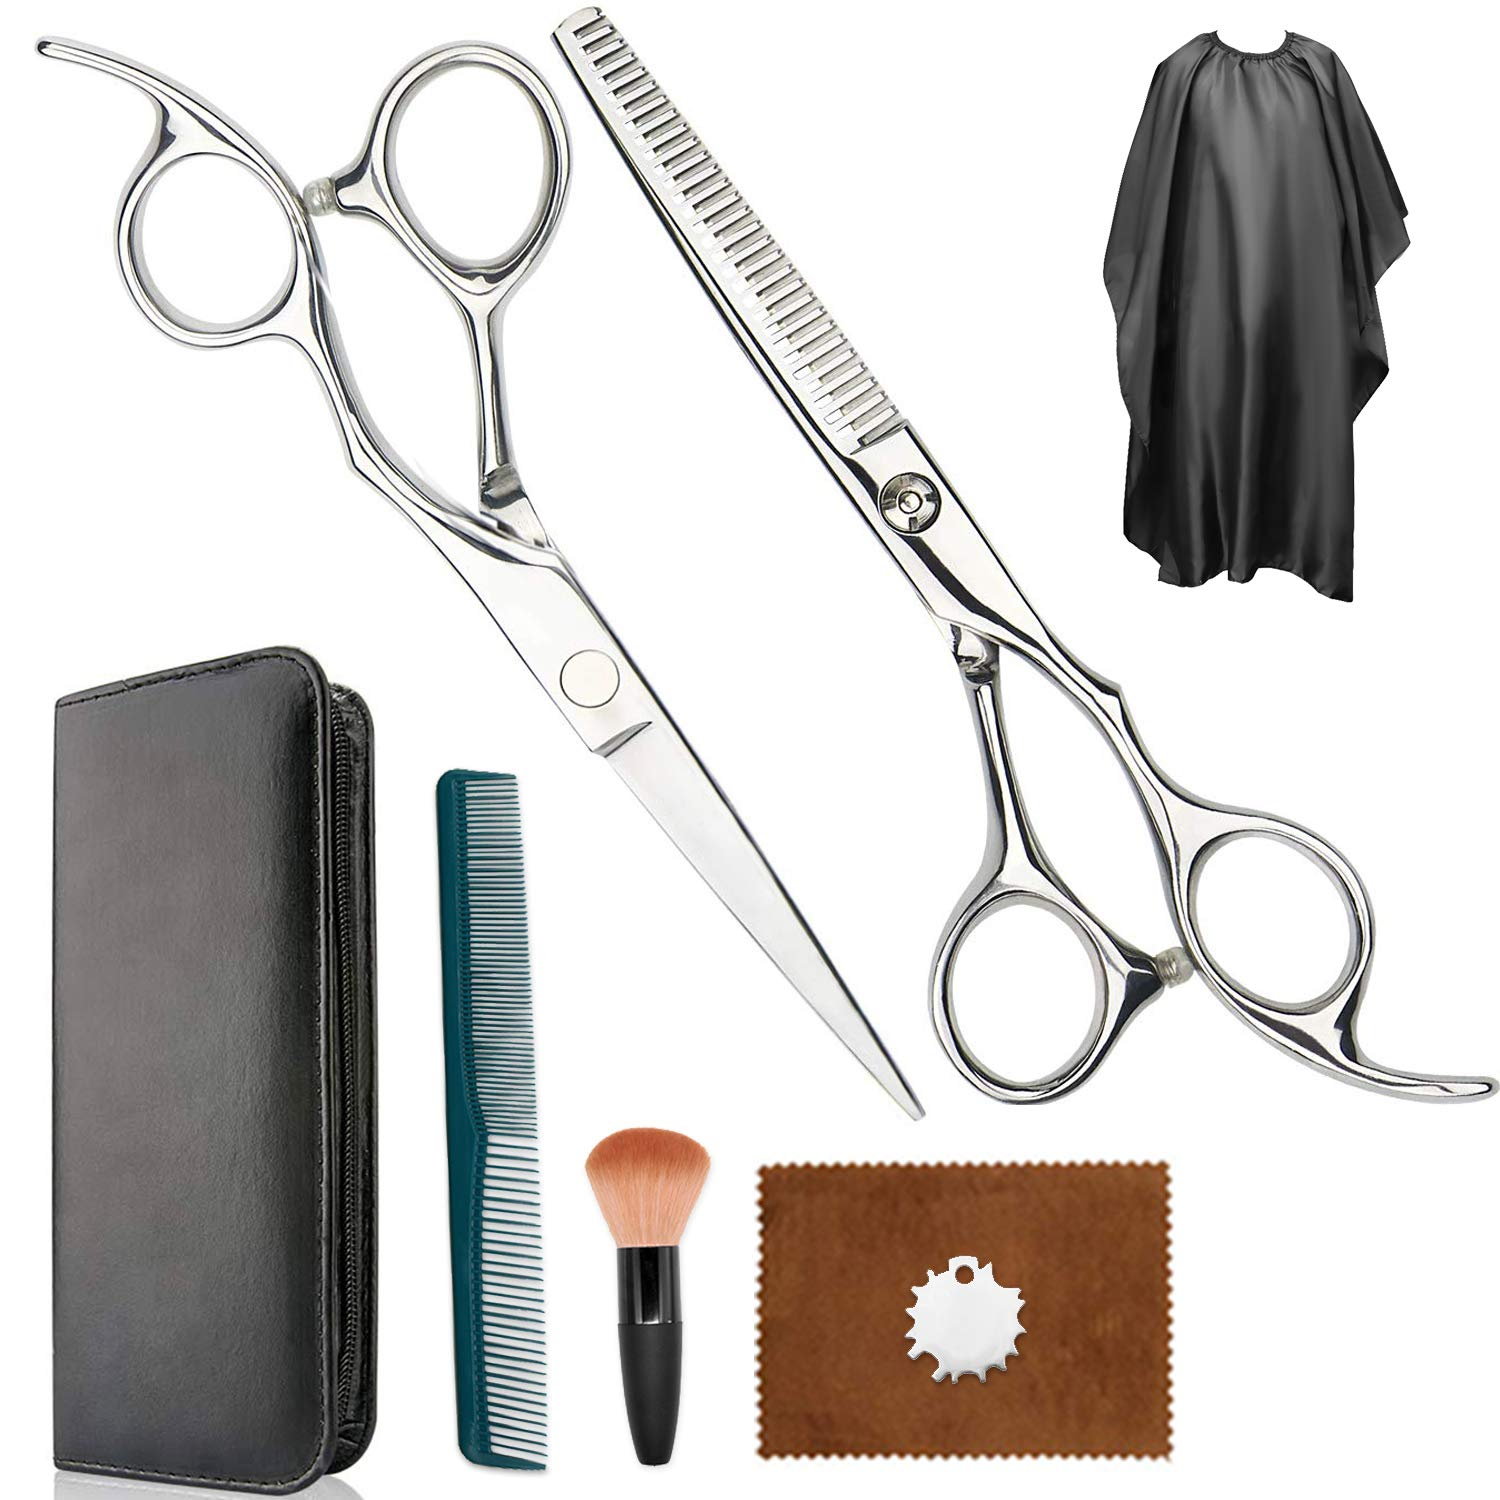 Hair Scissors, Hair Cutting Scissors Full Set ,Straight Scissors, Thinning Shears, Comb, Cape, Hairdressing Scissors Kit, Barber Set, Hair Cutting Shears Set Great For Hair Cutting At HOME and Salon